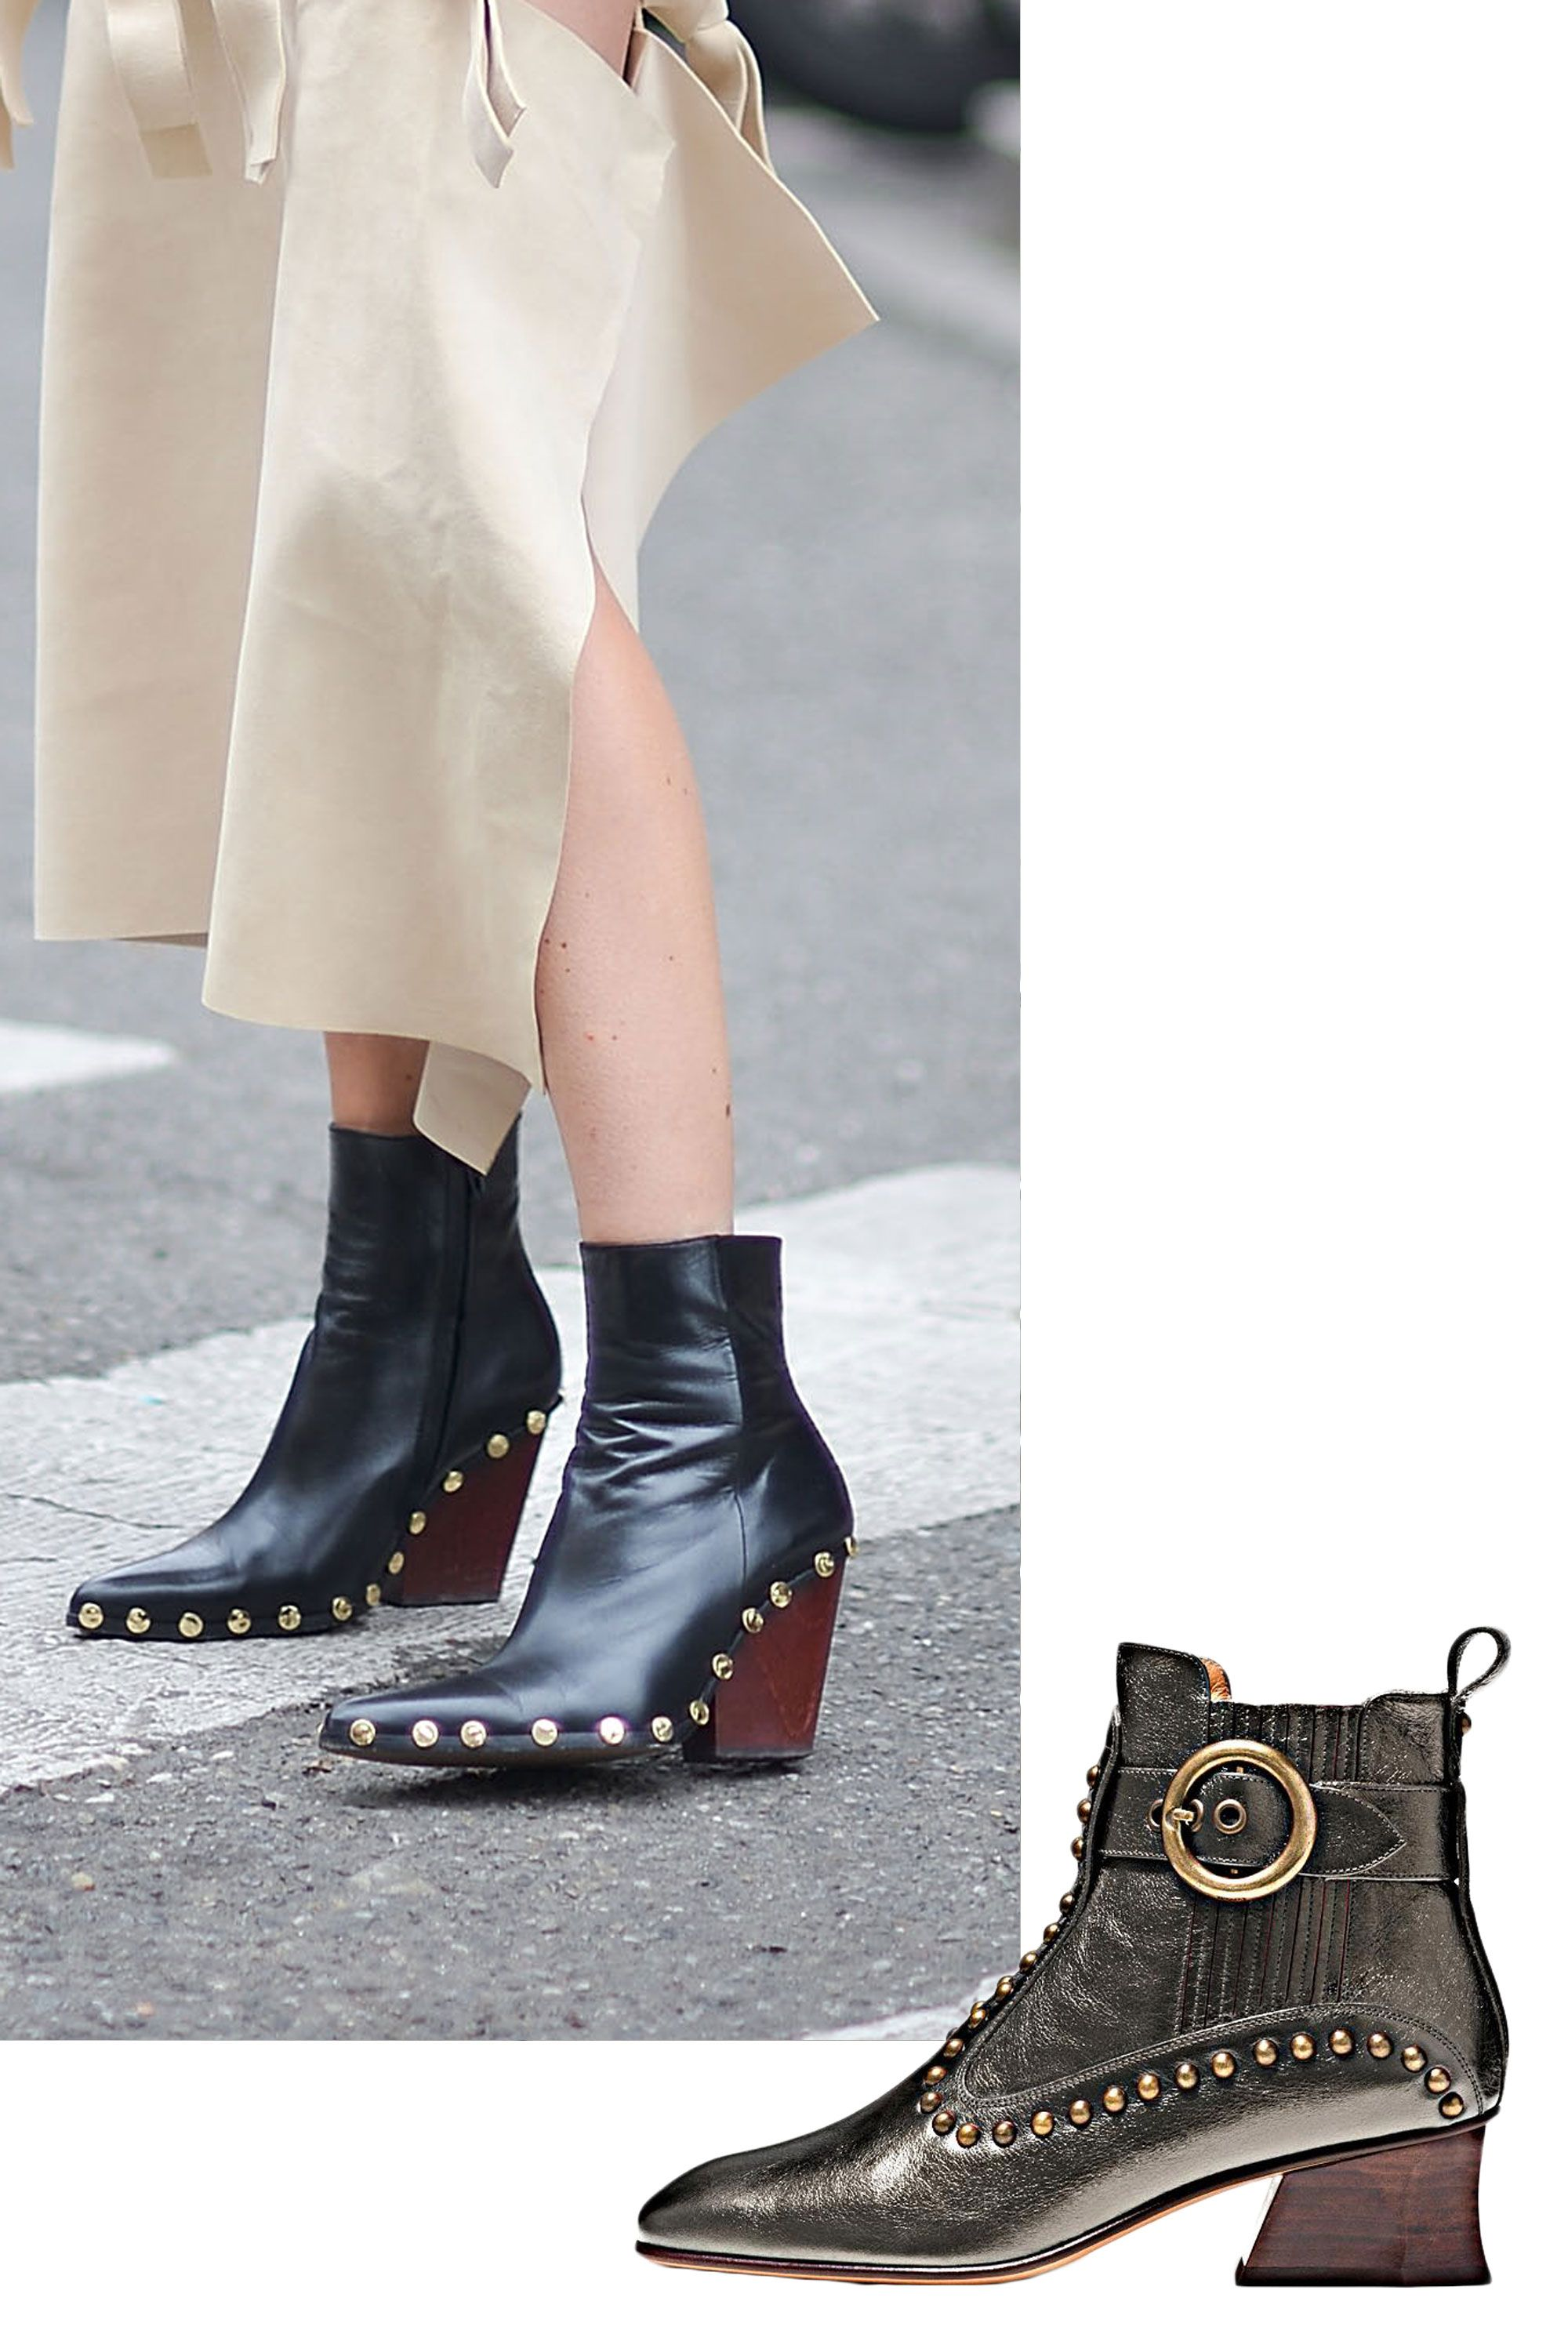 "<p>Has there ever been a shoe more perfect than the ankle boot? Easy to walk in and able to play nice with everything in your closet, it's the hardworking shoe that gets the most use all season. </p><p><em data-redactor-tag=""em"">Coach 1941 Chelsea Boot, $575, </em><a rel=""noskim"" href=""http://www.coach.com/coach-designer-booties-chelsea-boot/Q8915.html?CID=D_B_ELL_11590"" target=""_blank""><em data-redactor-tag=""em"">coach.com</em></a><br></p>"